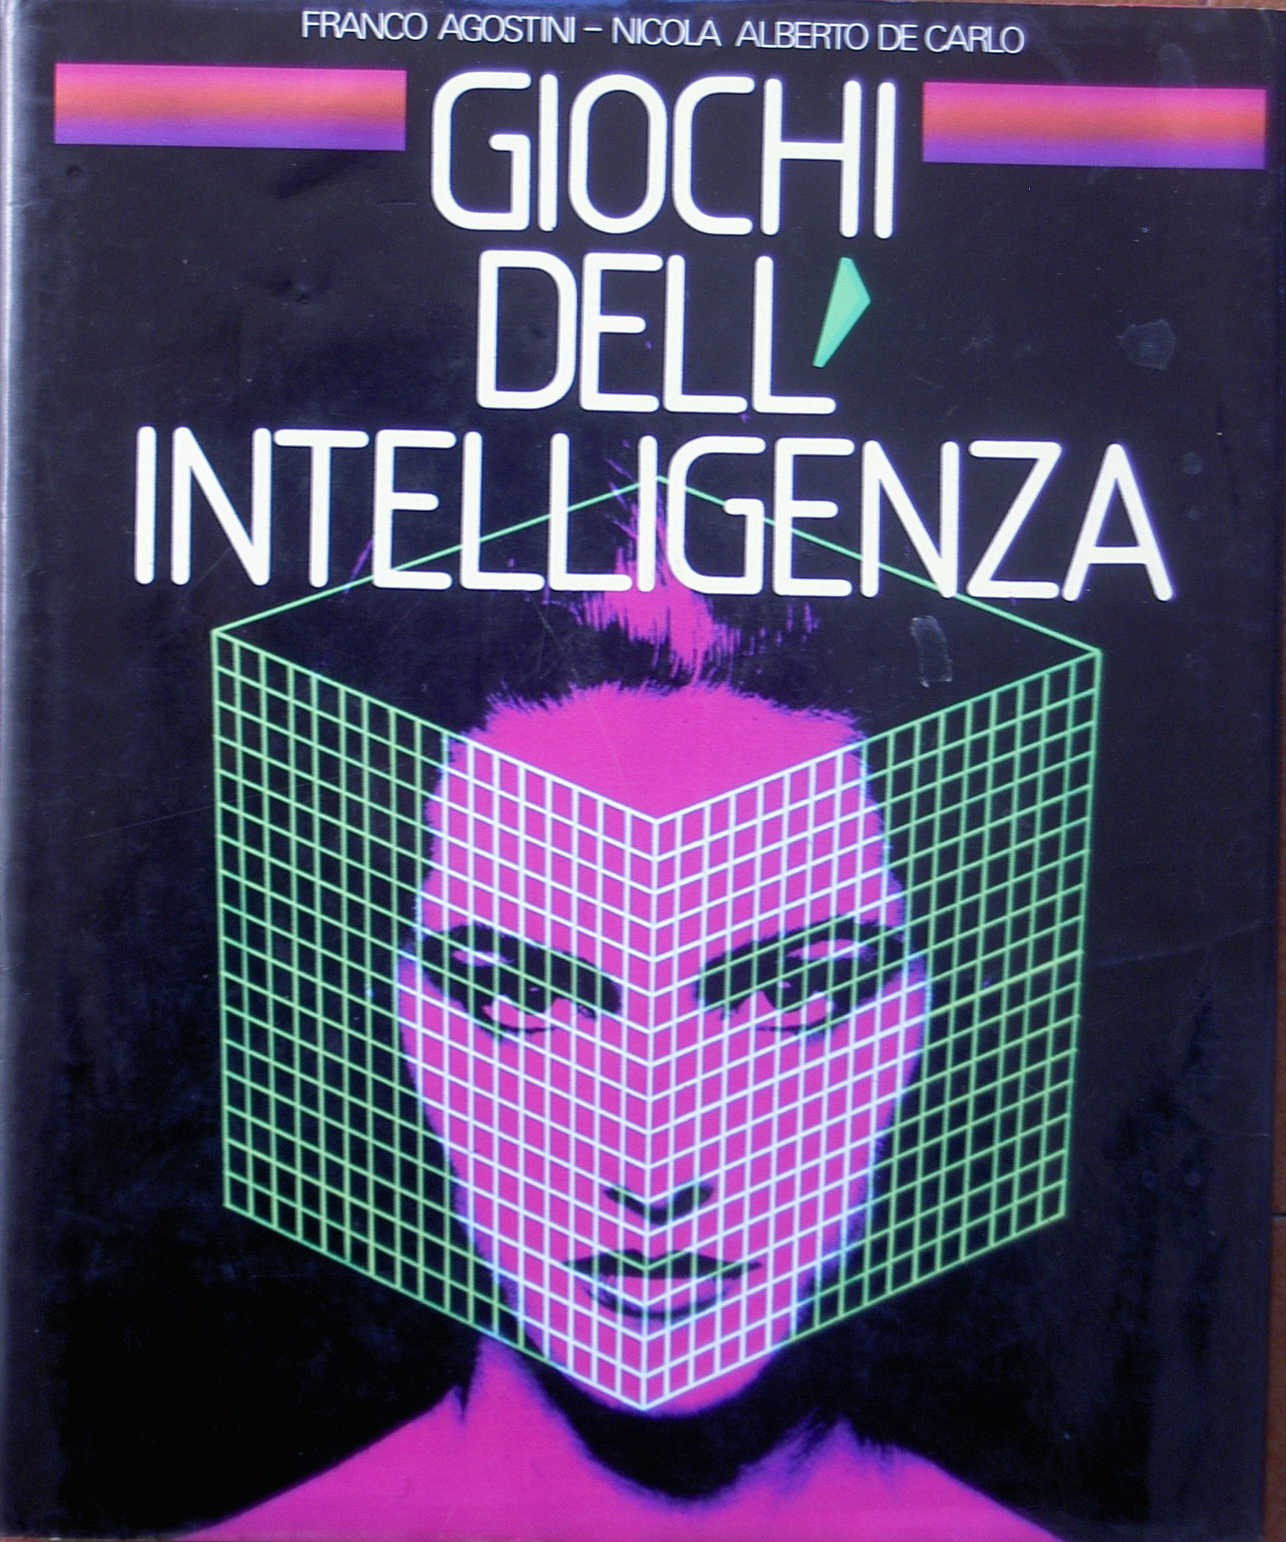 Giochi dell'intellig...